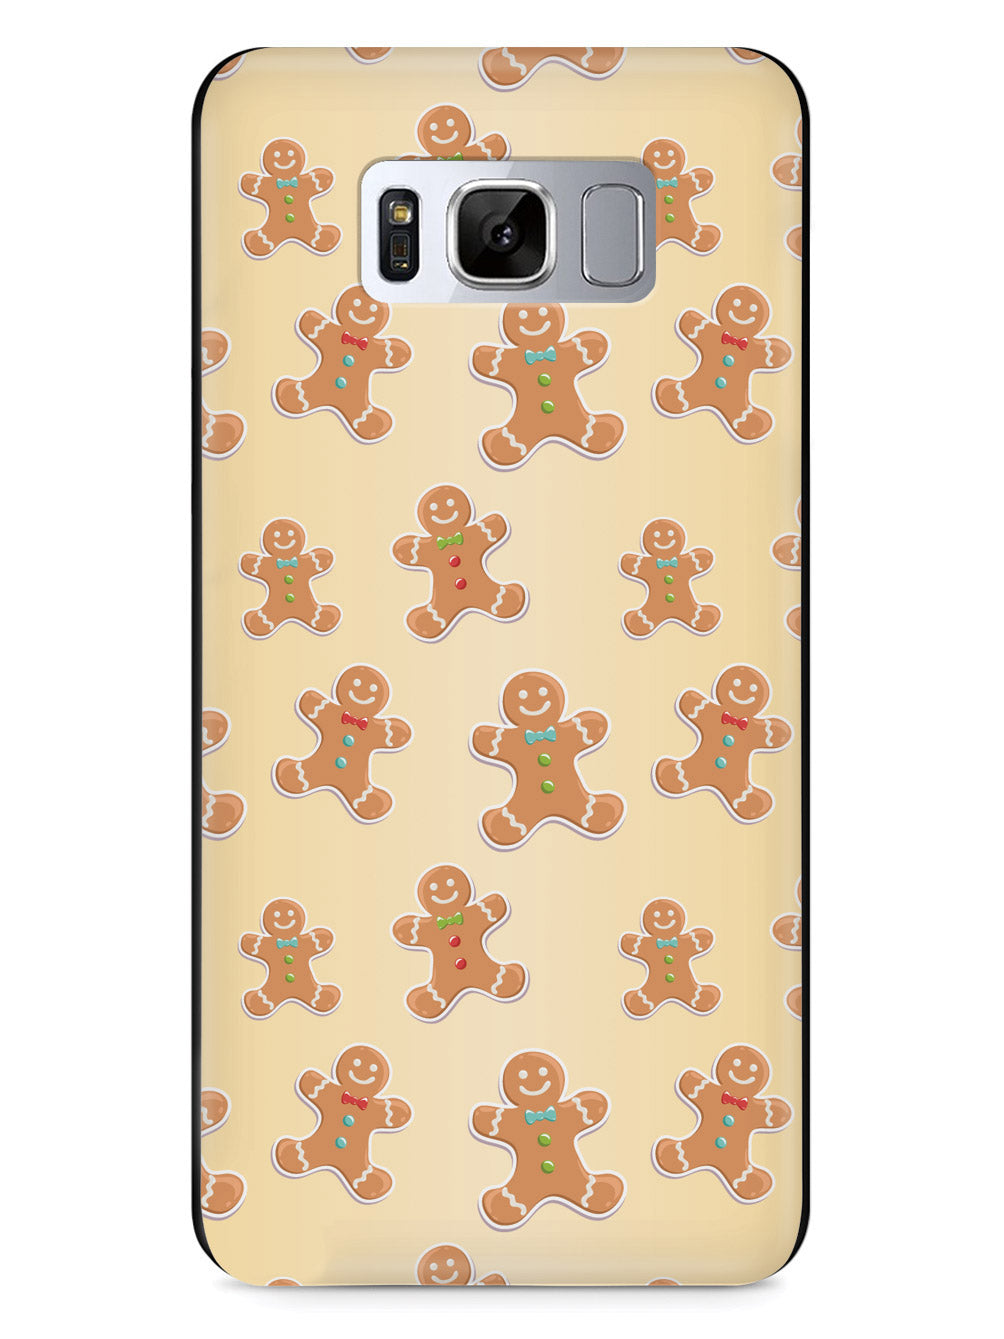 Gingerbread Man Pattern - Black Case